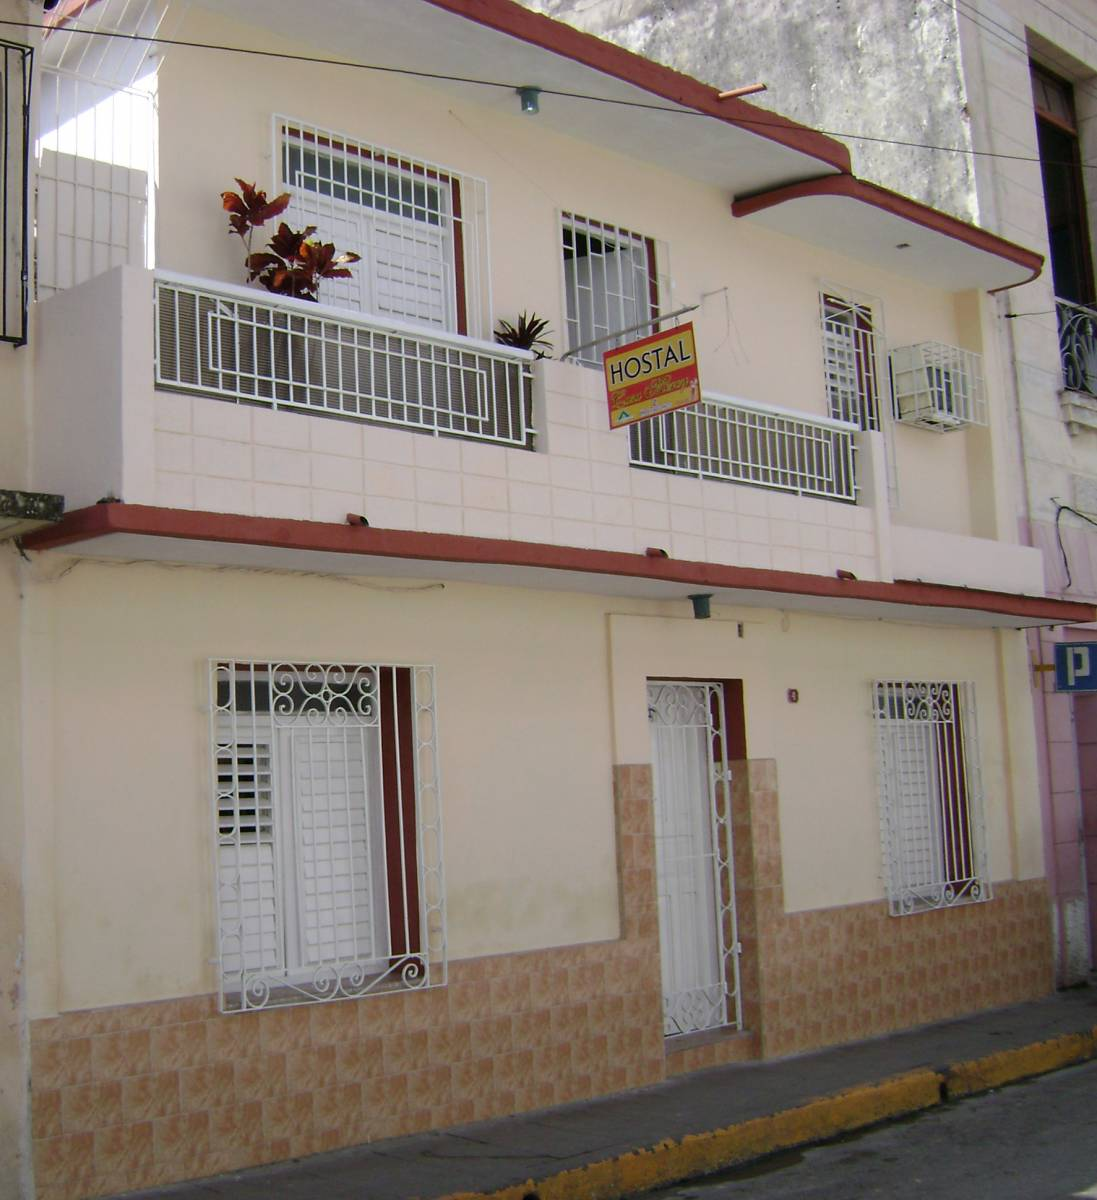 Casa Mercy Hostal, Santa Clara, Cuba, Cuba hostels and hotels